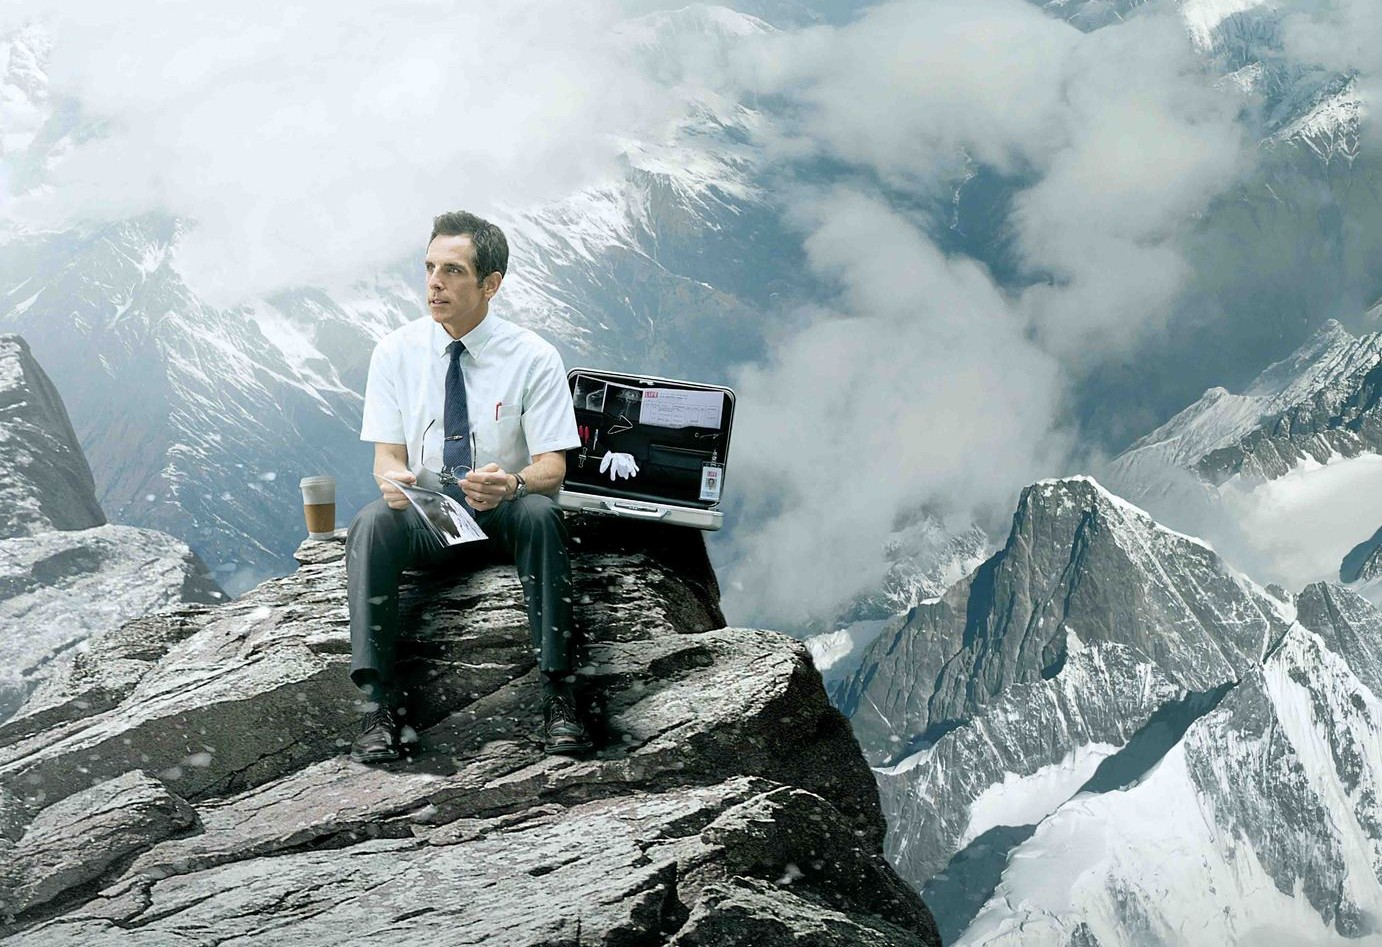 The Secret Life of Walter Mitty Movie The Secret Life of Walter Mitty Movie Review